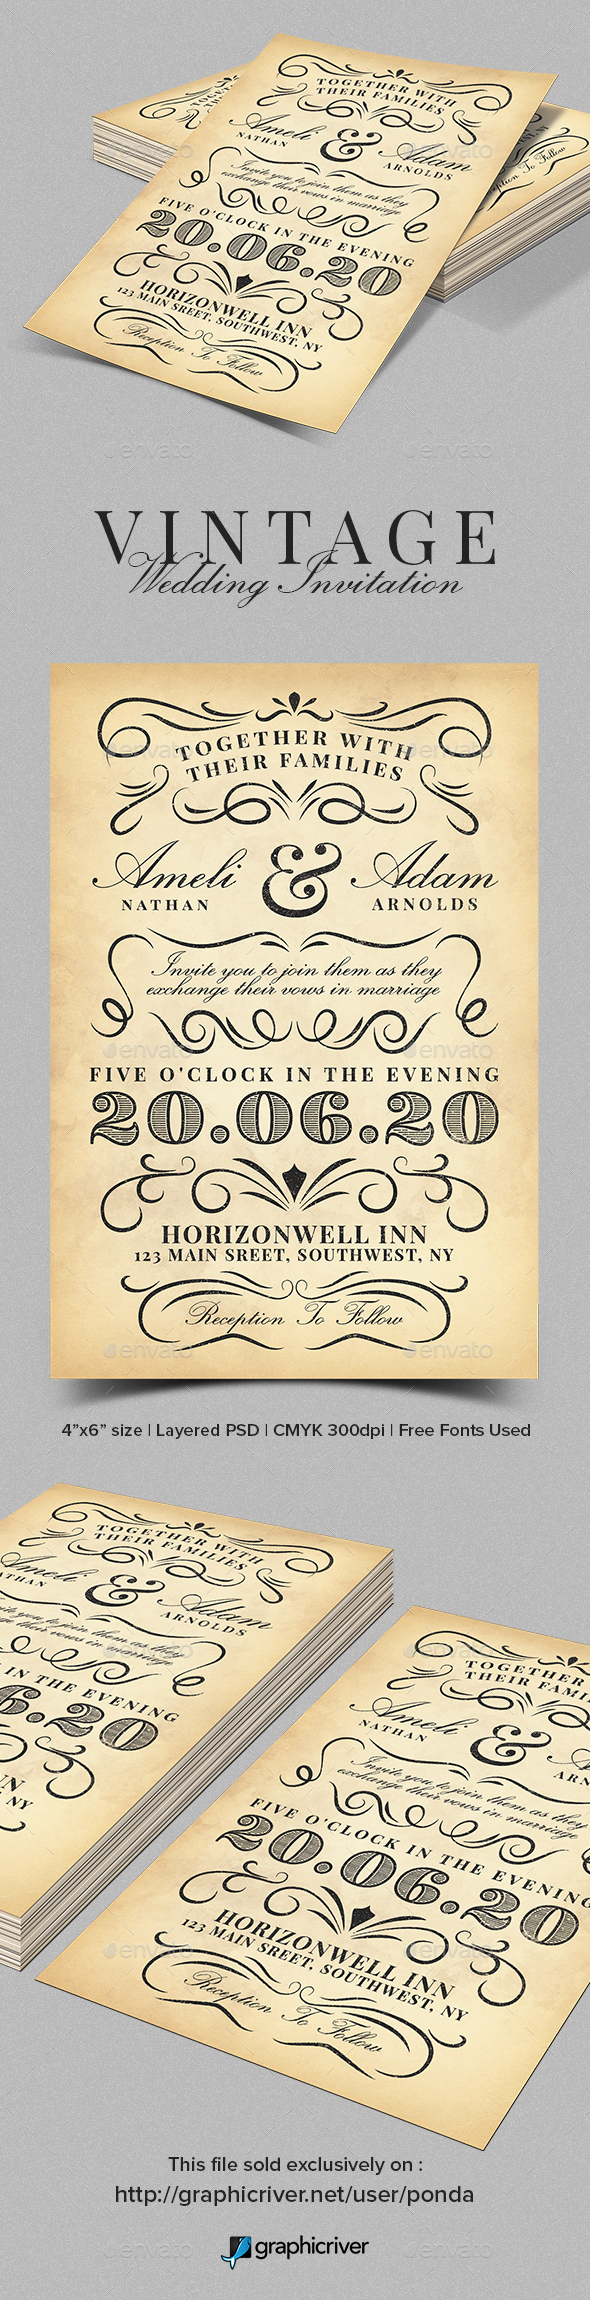 Vintage Wedding Invitation Template by JunPonda | GraphicRiver